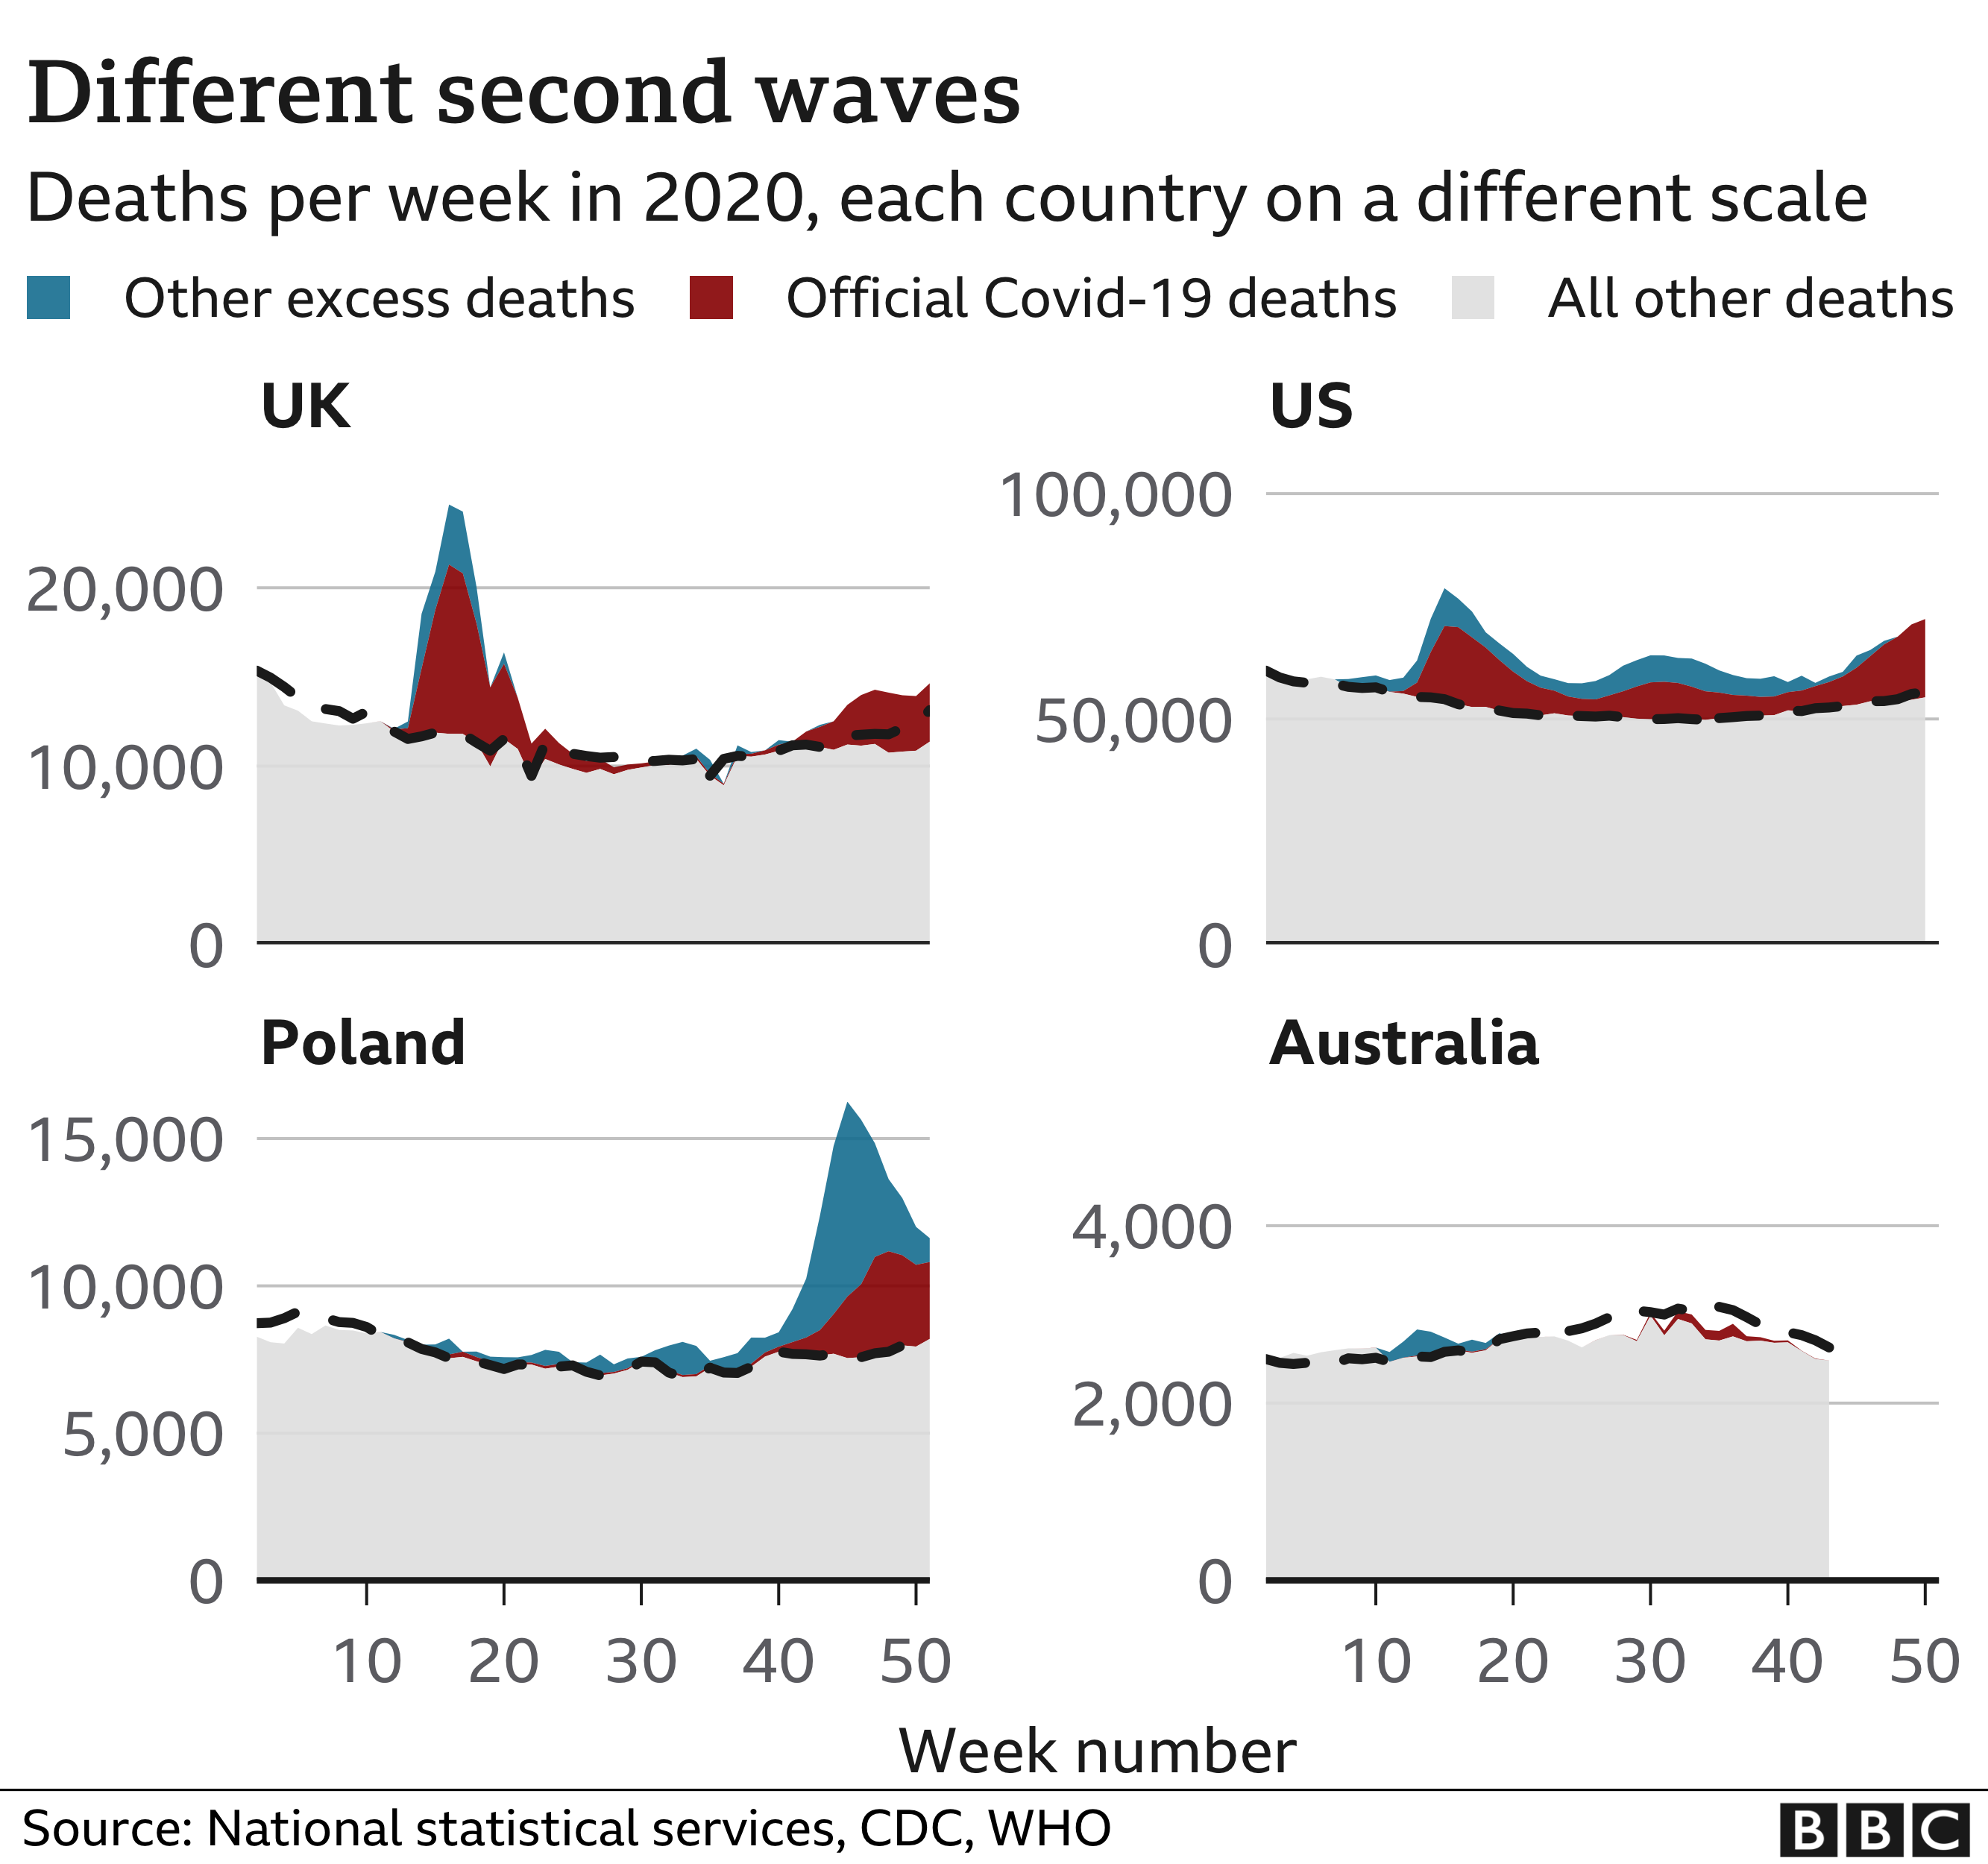 Graphic: Different second waves